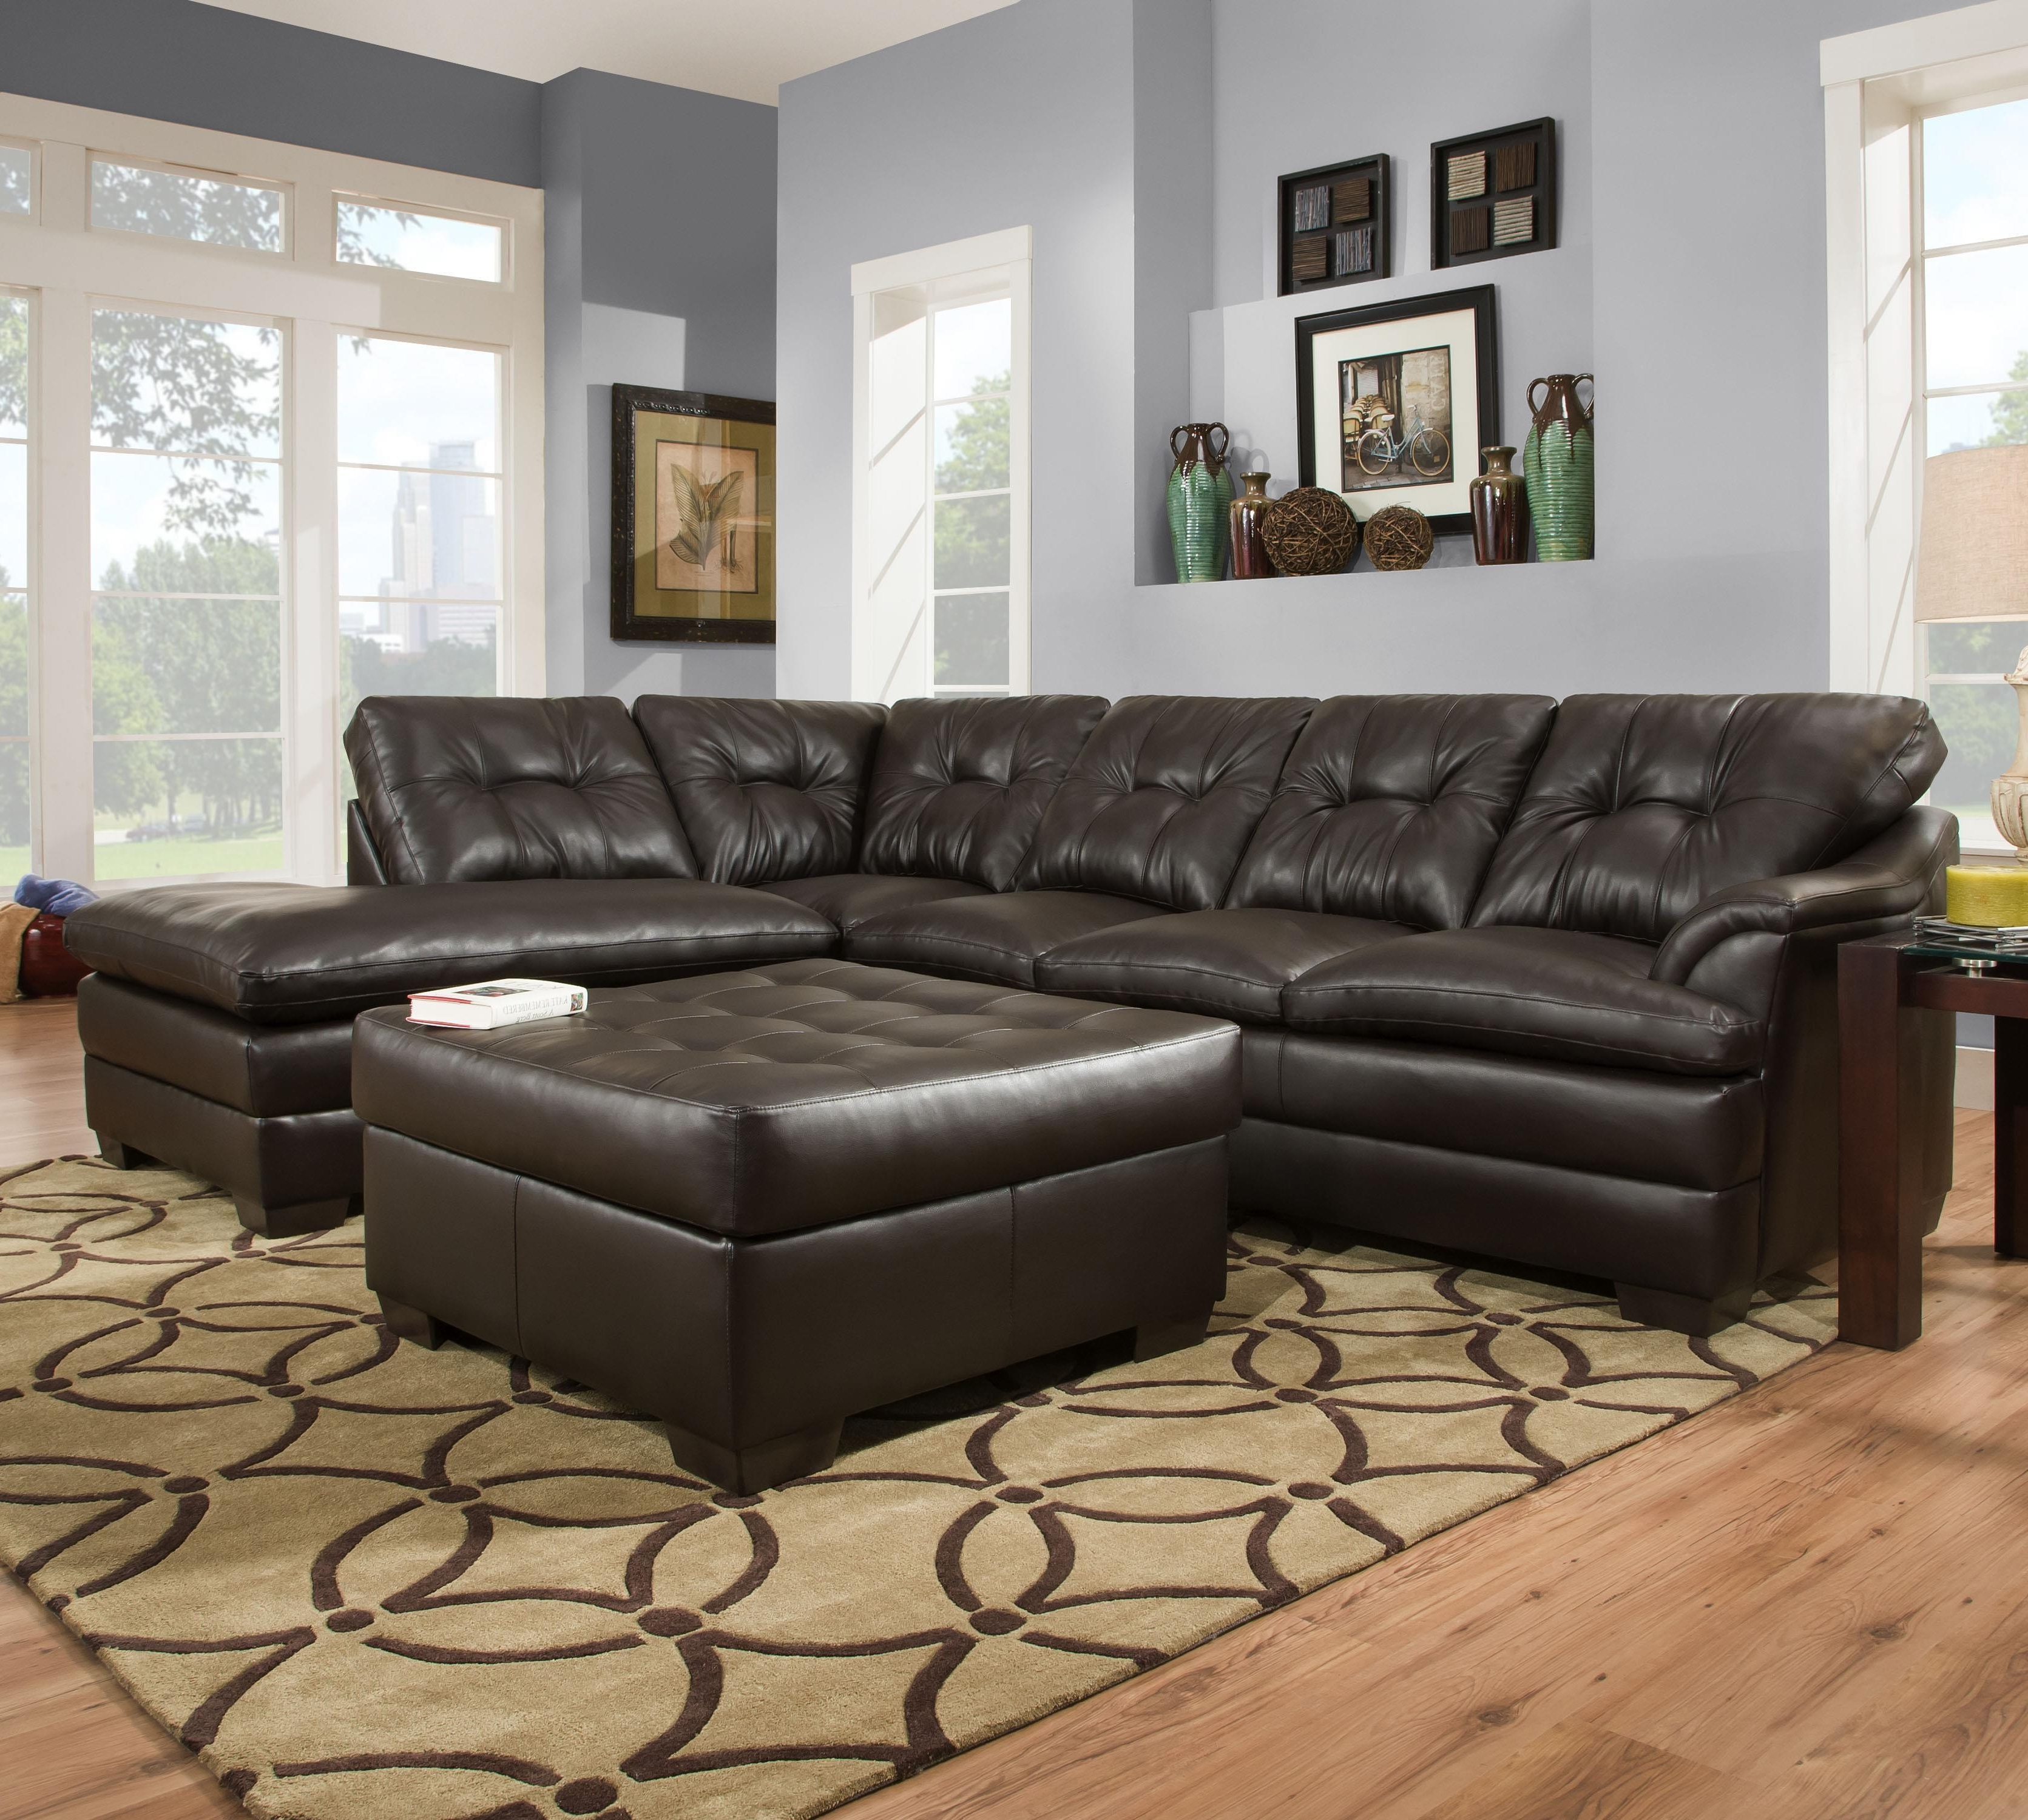 Jackson Tn Sectional Sofas For Most Current Furniture : Royal Furniture Jackson Tn Fresh American Furniture (Gallery 7 of 15)